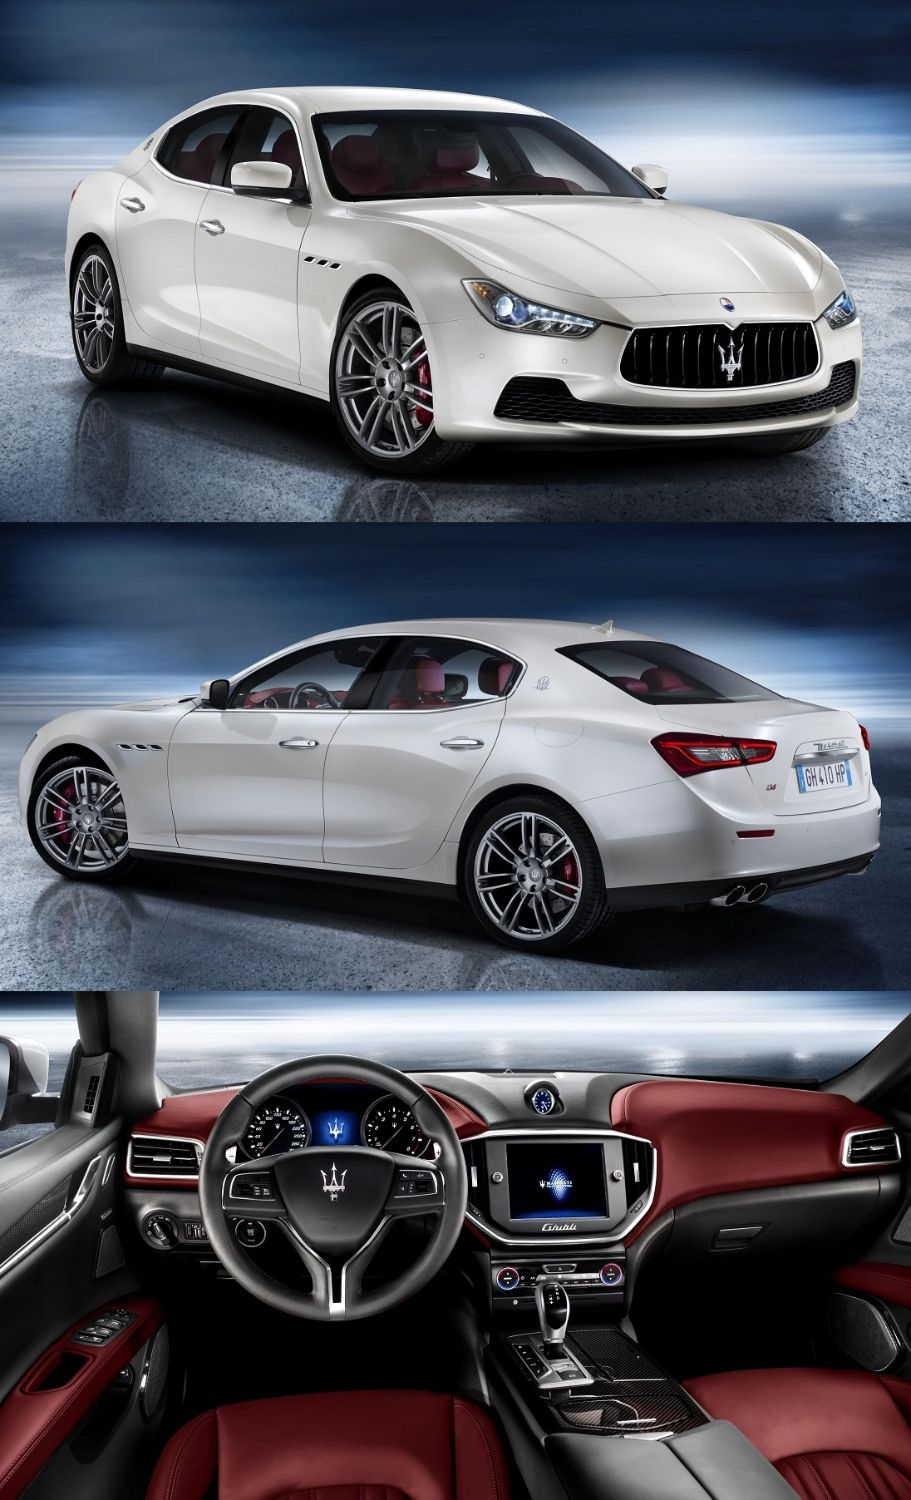 5 Future Collectible Cars You Should Buy Now | Maserati ghibli ...